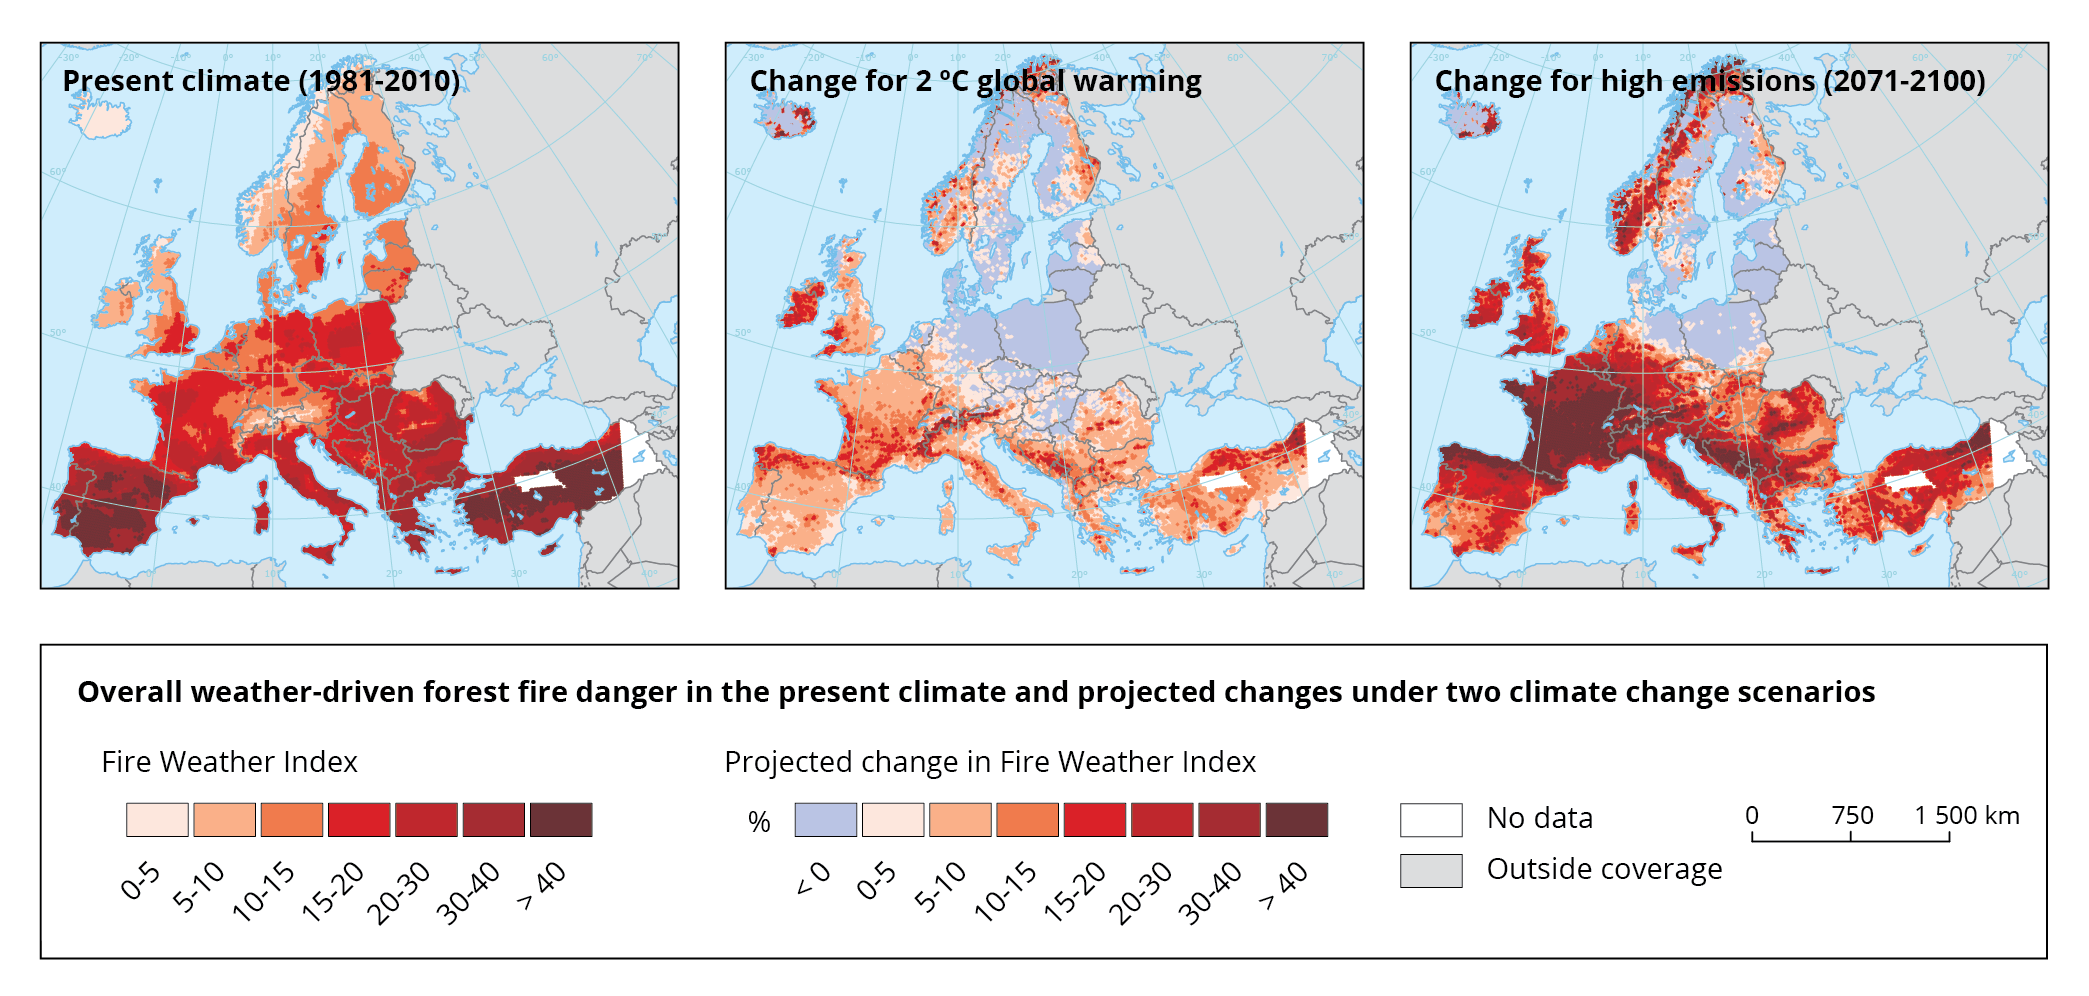 Forest fire danger in the present climate and projected changes under two climate change scenarios